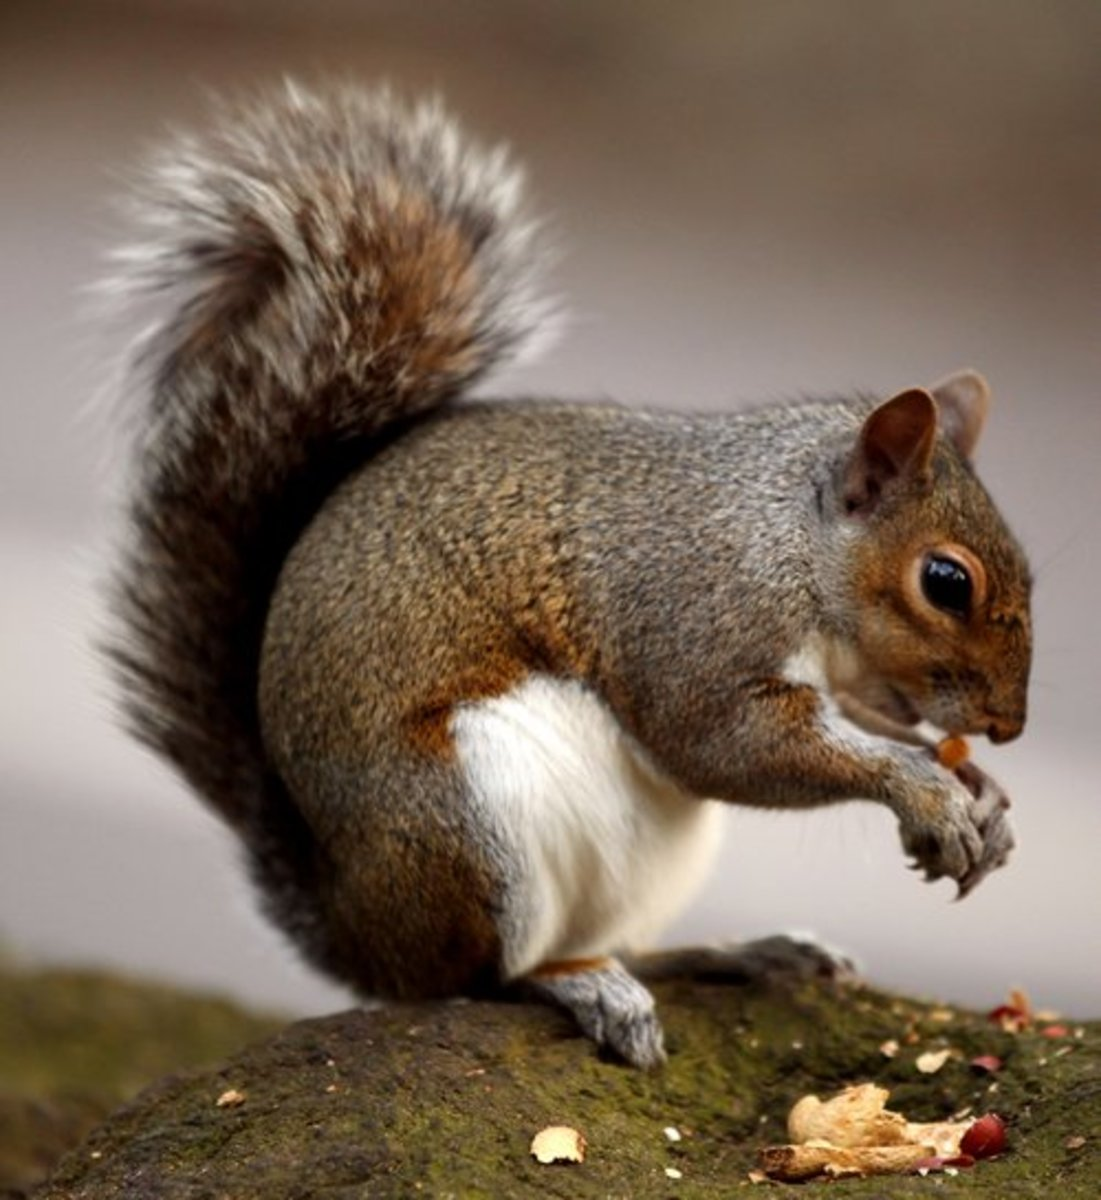 Squirrel, Pixabay, public domain